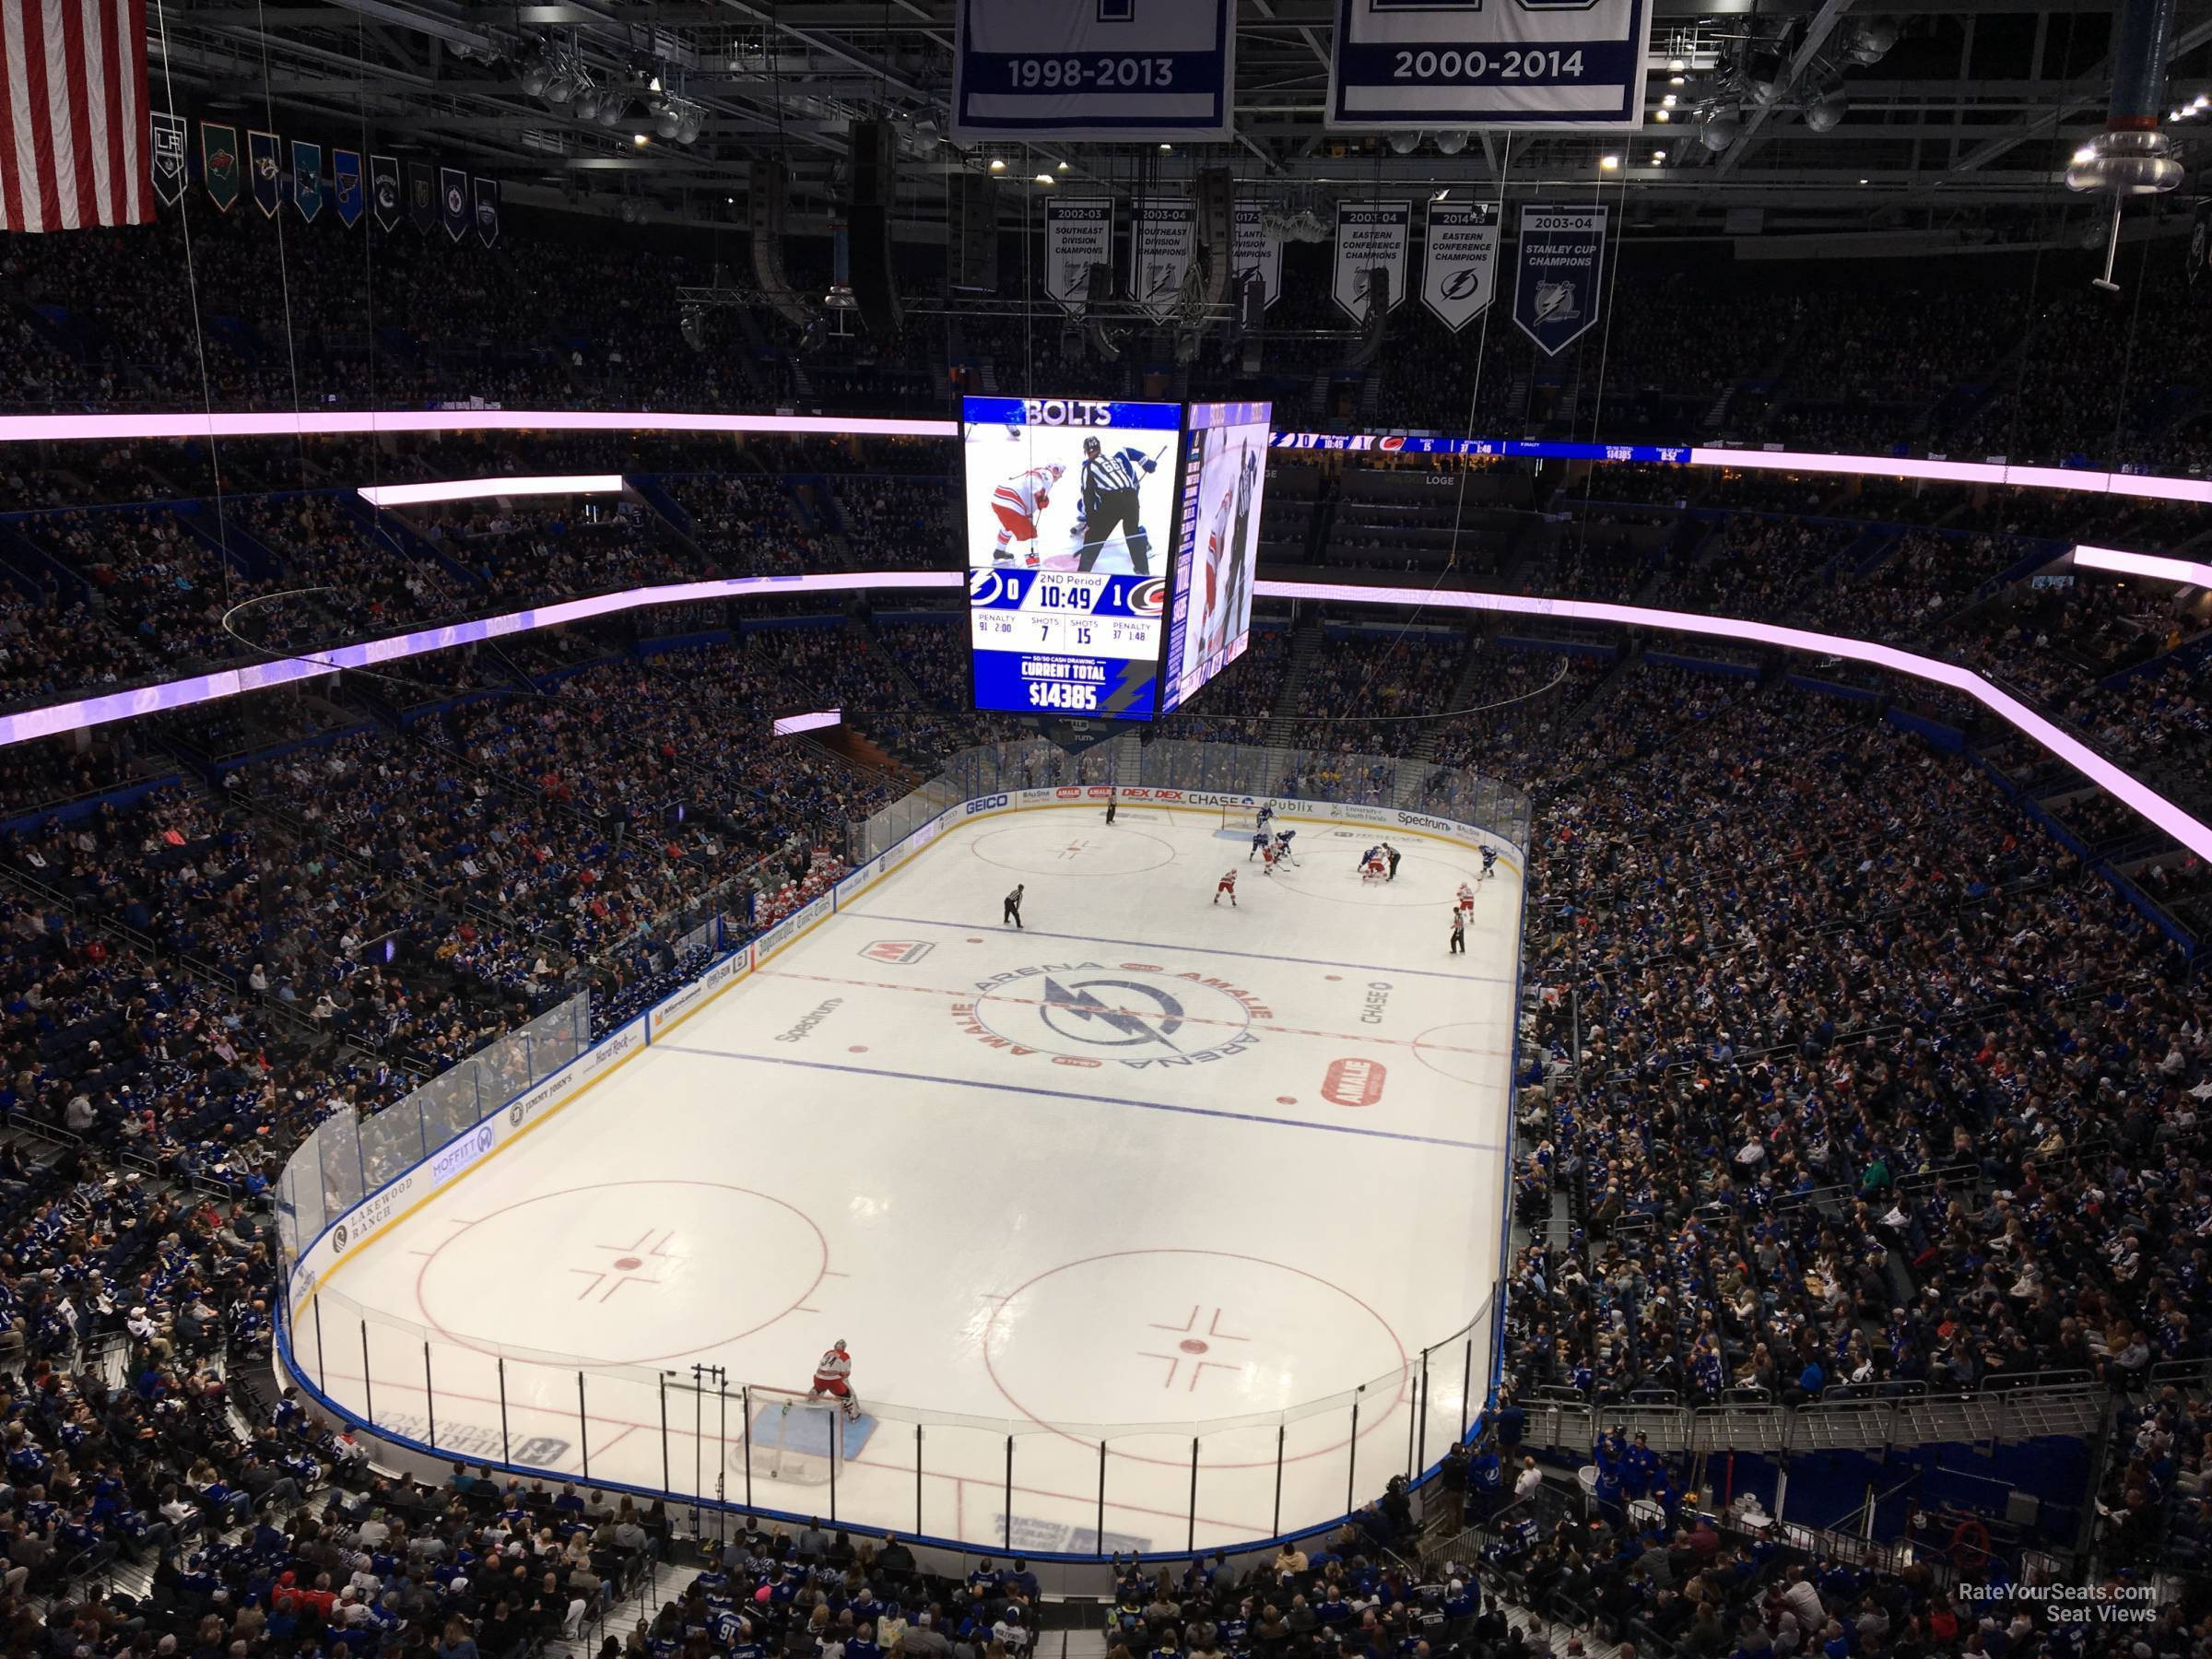 Section 322 seat view